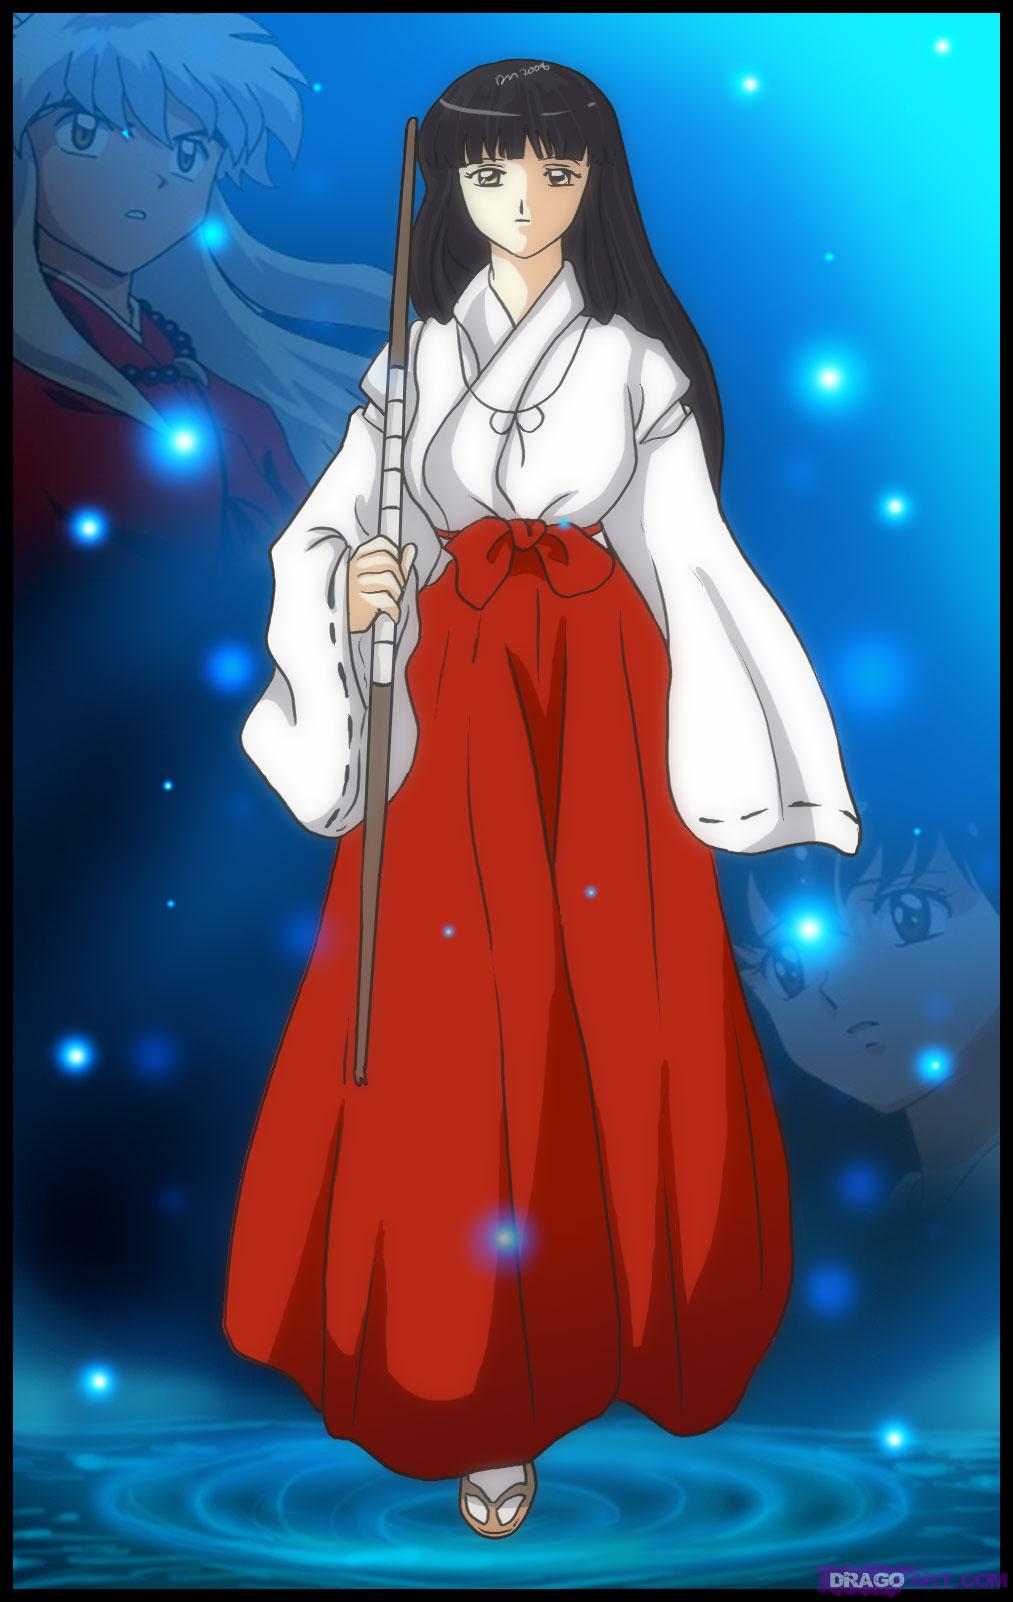 how_to_draw_kikyo_from_inuyasha_1_000000001657_5.jpg